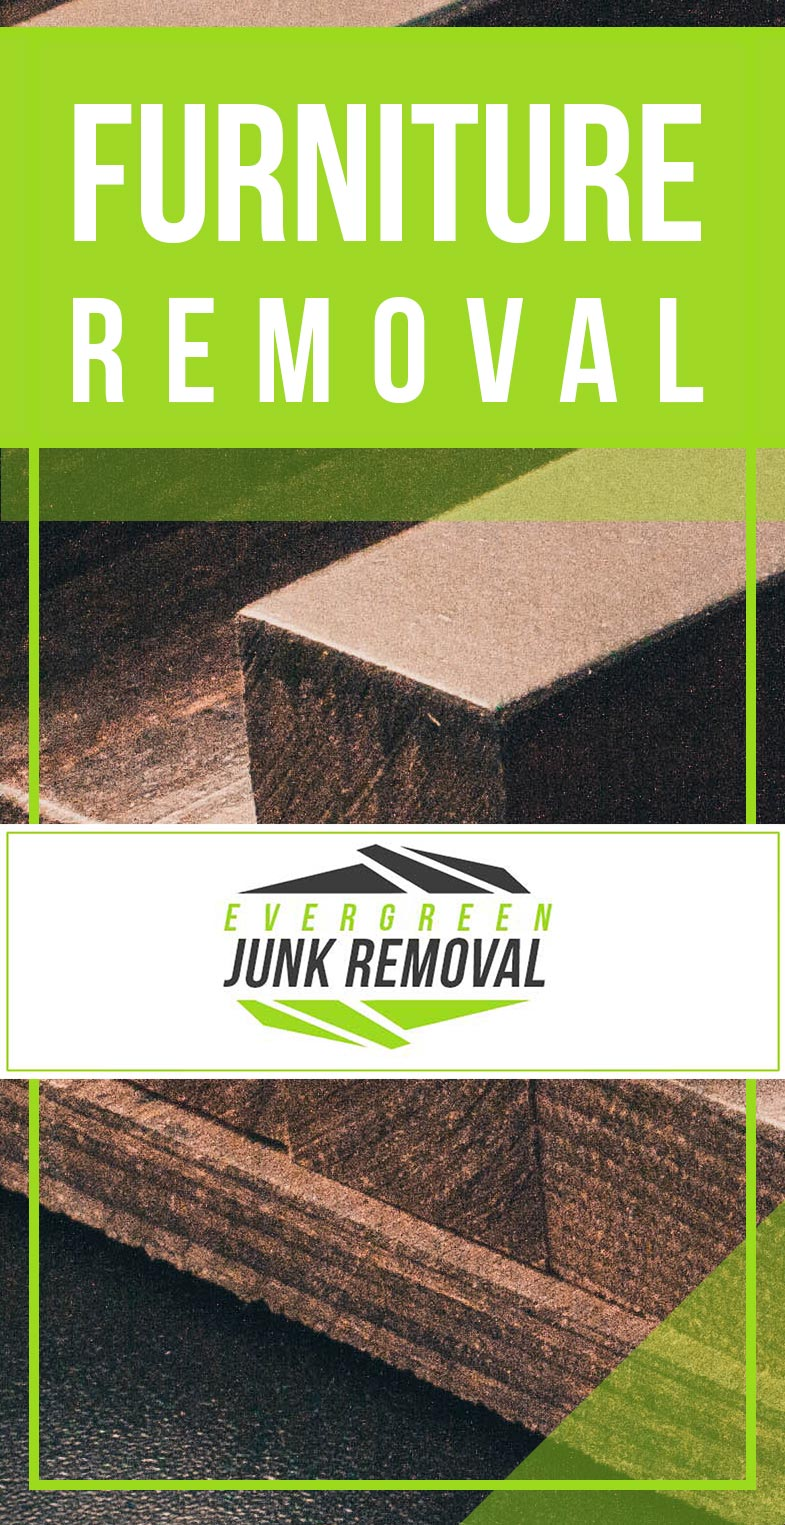 Junk Removal Lazy Lakes Furniture Removal